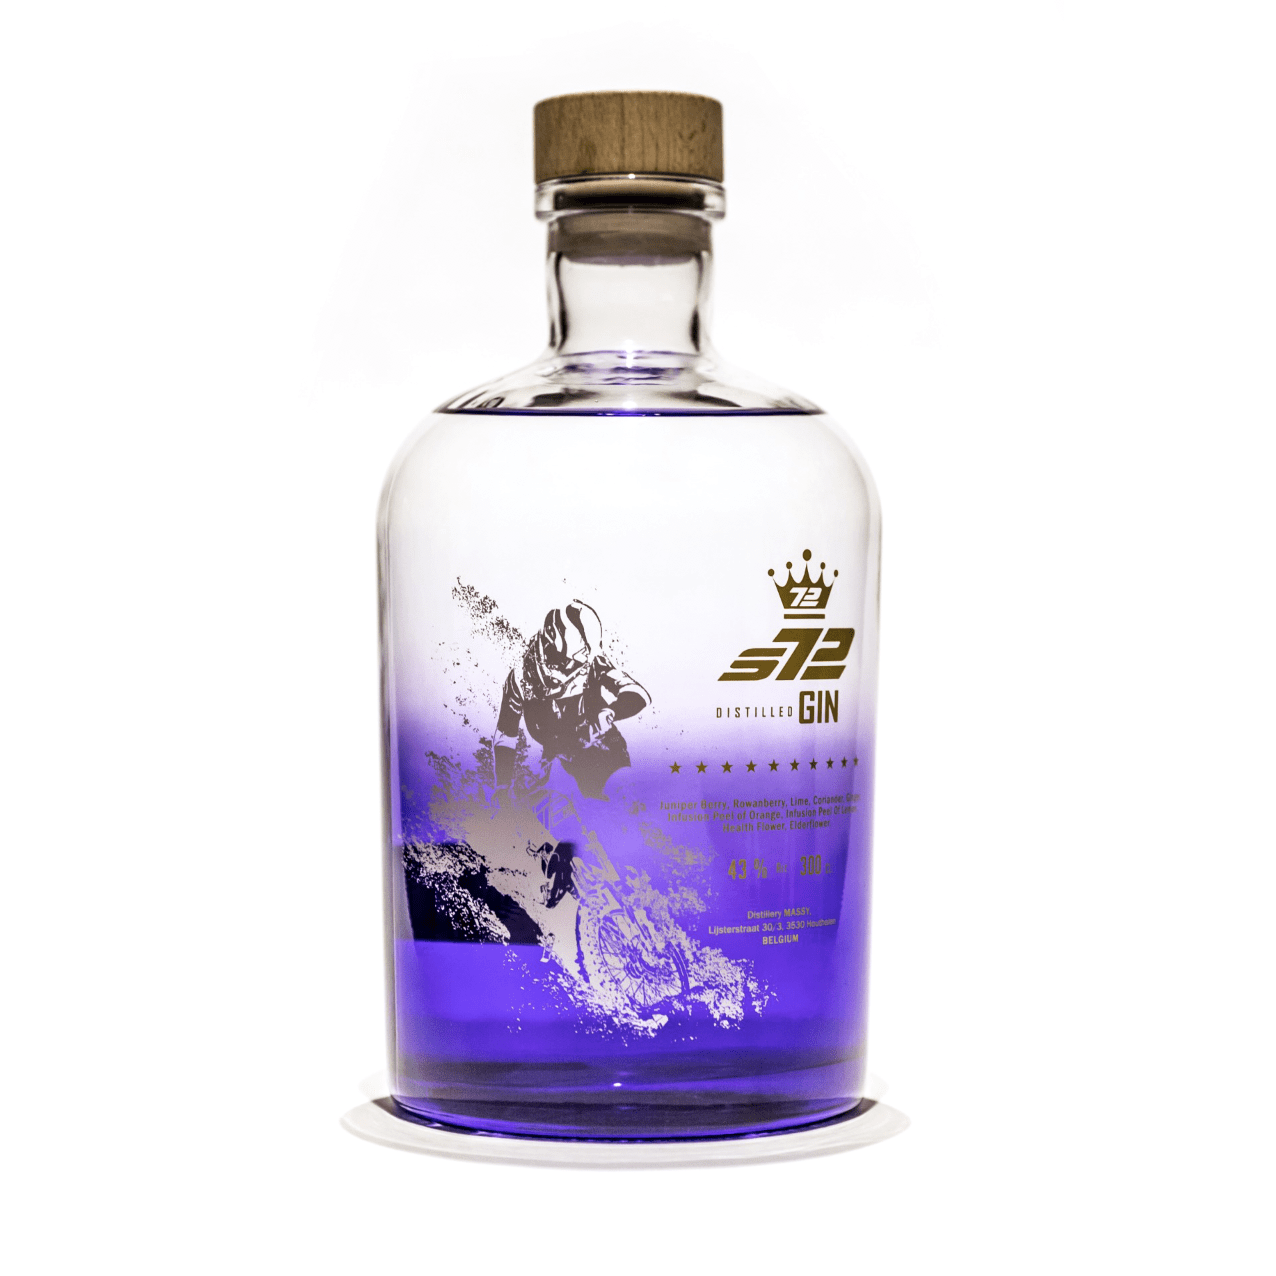 https://www.s72gin.com/wp-content/uploads/2019/12/S72-LIMITED-EDITION-3-LITER-BOTTLE.png